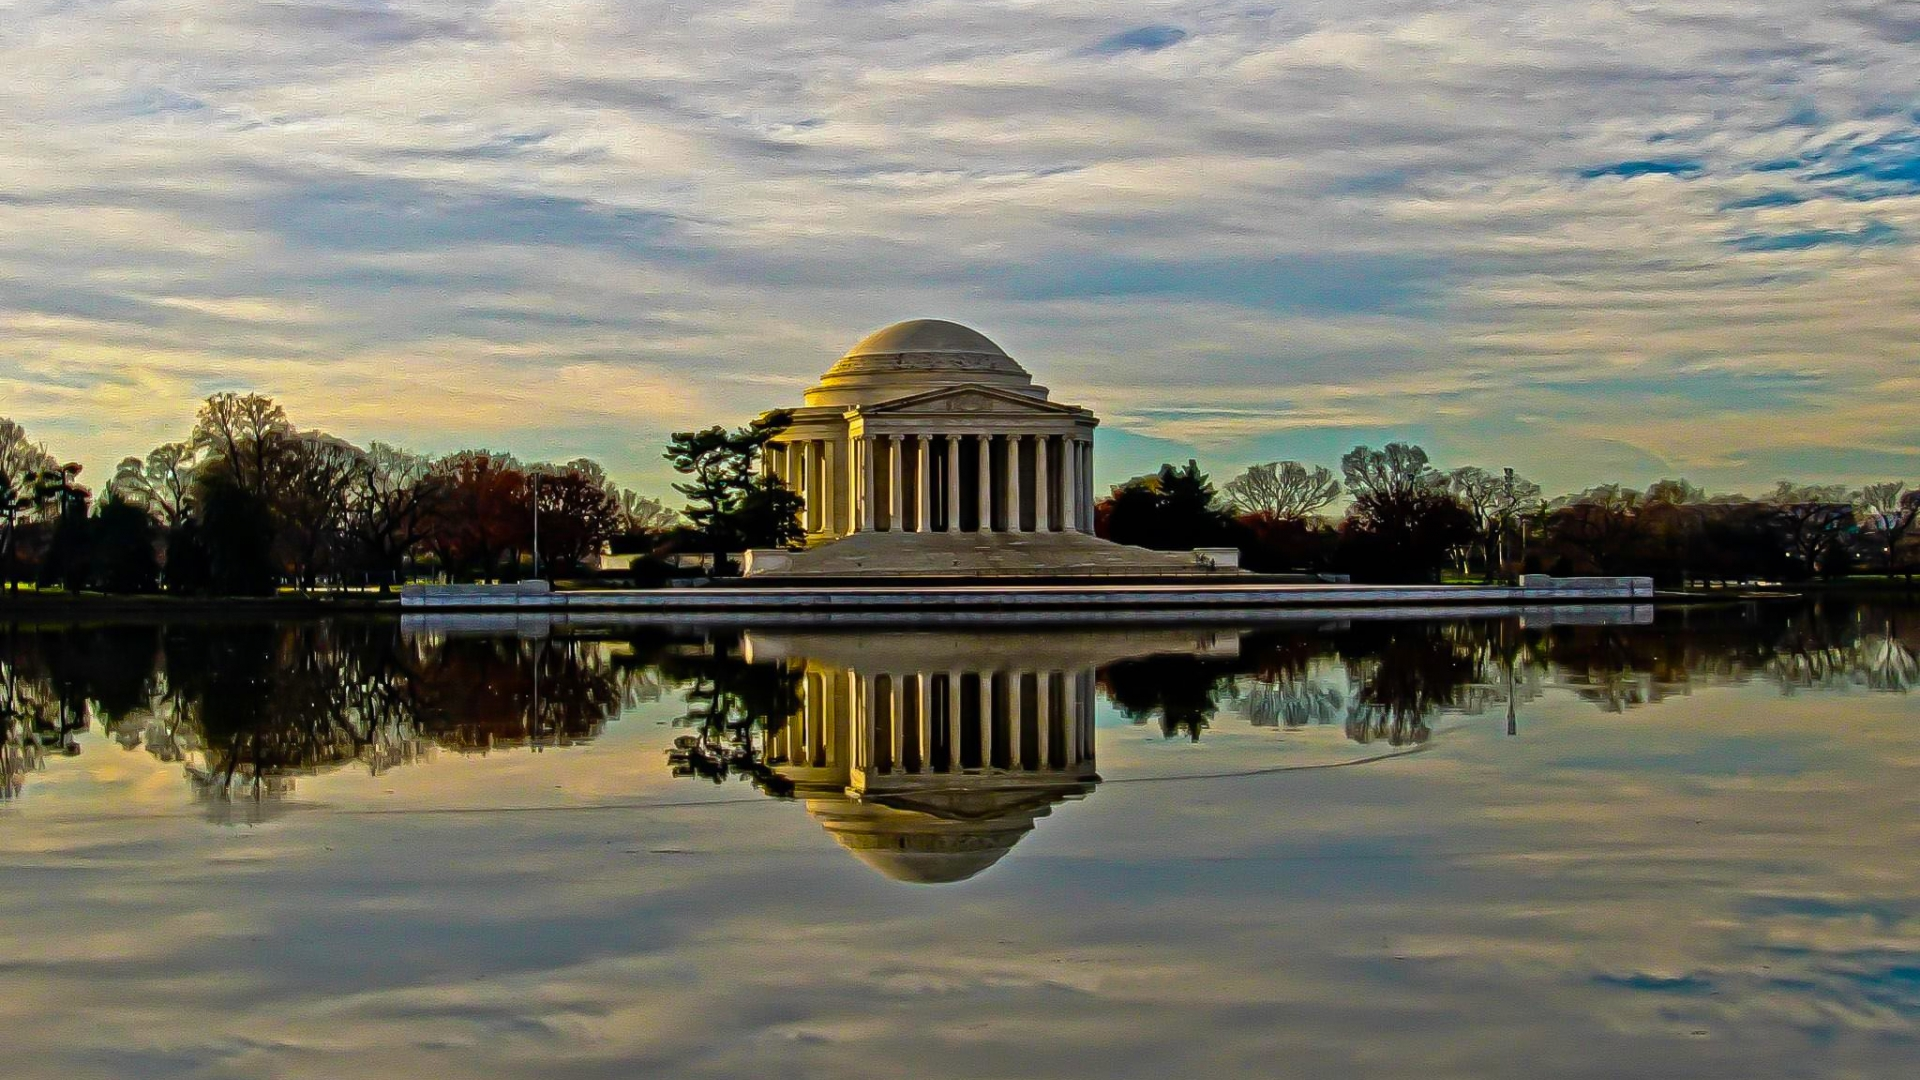 A waterfront view reflects the grandeur of the Thomas Jefferson Memorial as fall trees border each side and a sunset sky filled with clouds hovers above.